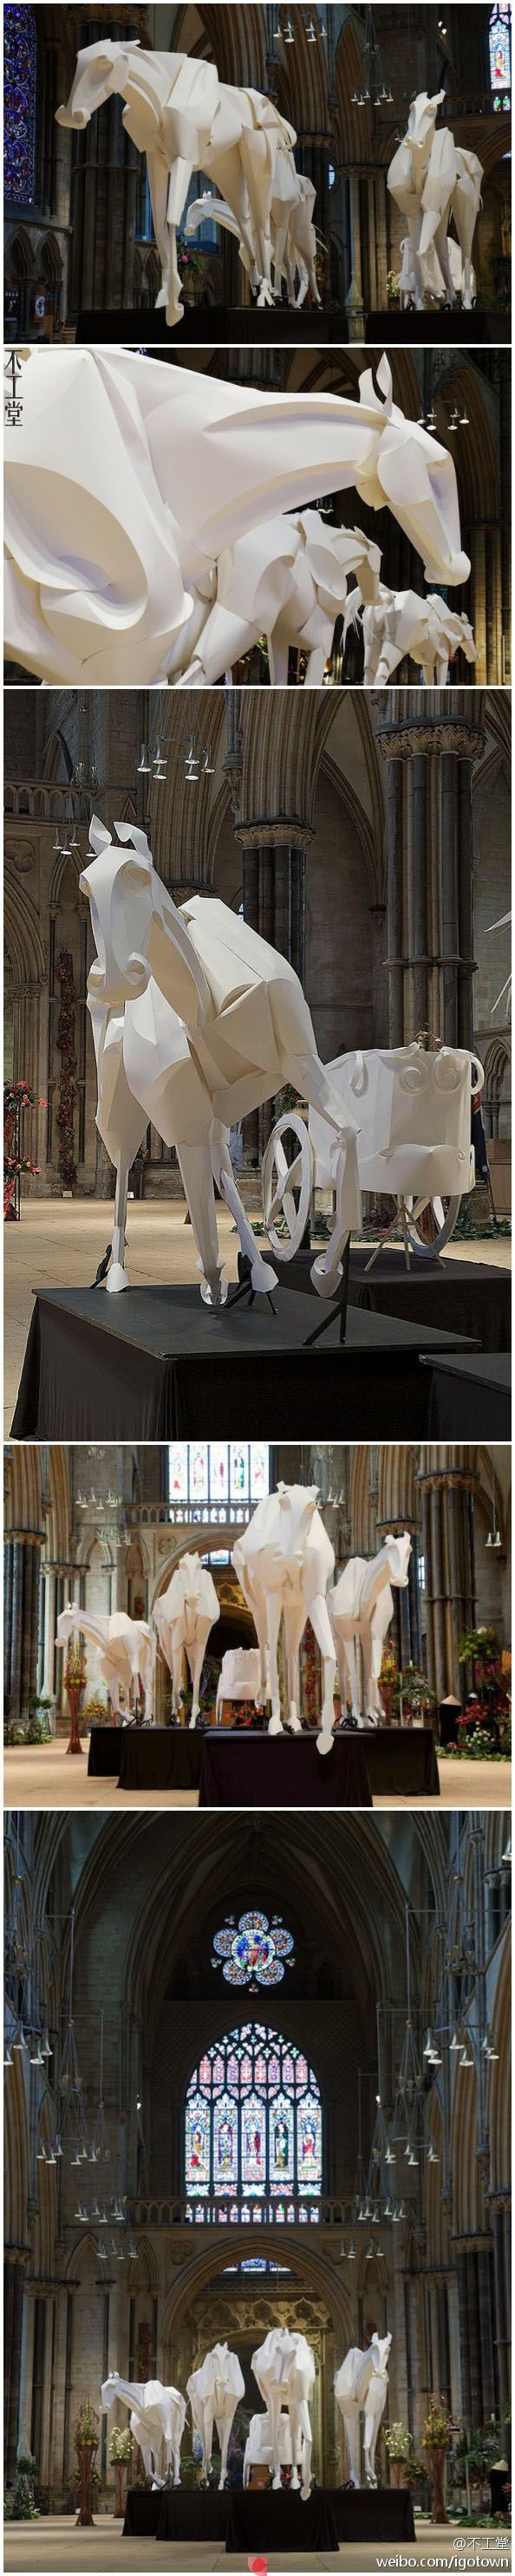 Installation by Richard Sweeney - horse and chariot sculpture installation made of paper inside the Lincoln Cathedral in Lincoln, England.